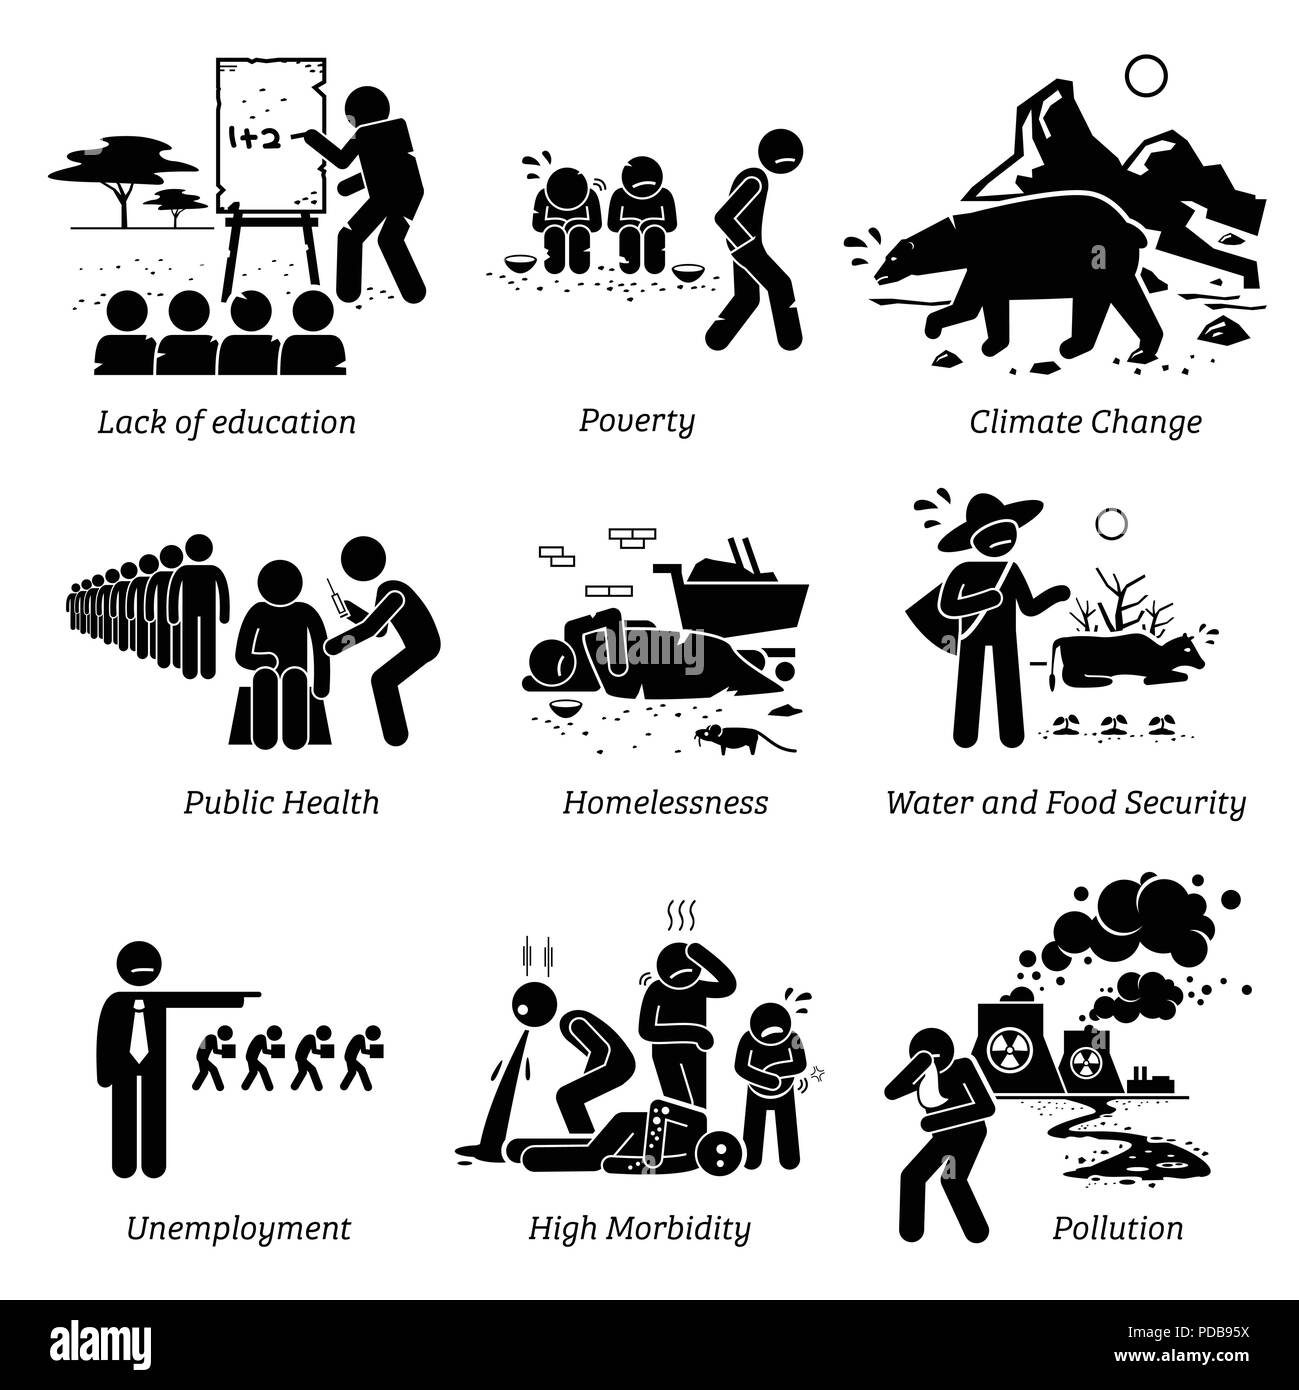 Social Issues and Critical Problems Pictogram Icons. - Stock Vector